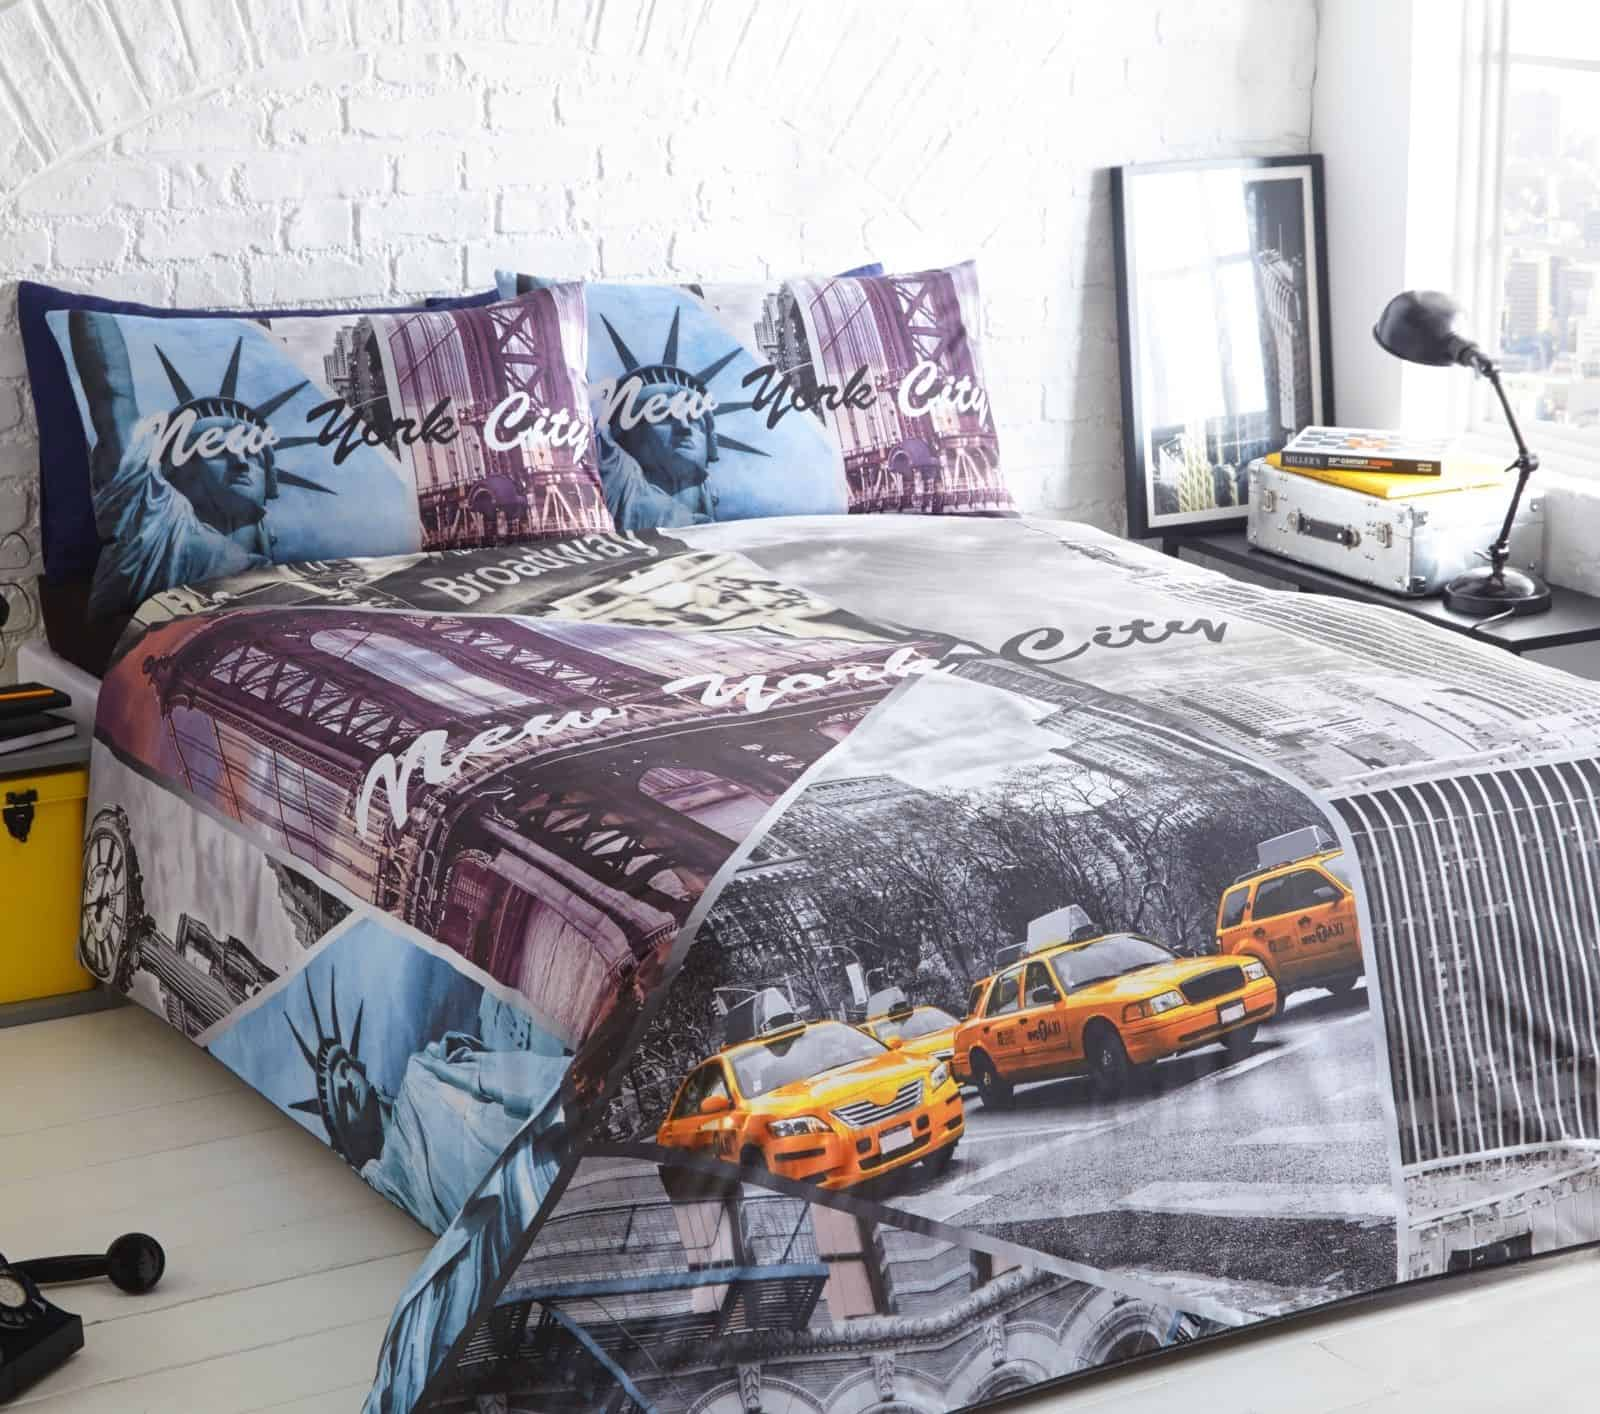 King Of New York Scene: New York City Taxi Scene Printed Duvet Quilt Pillowcase